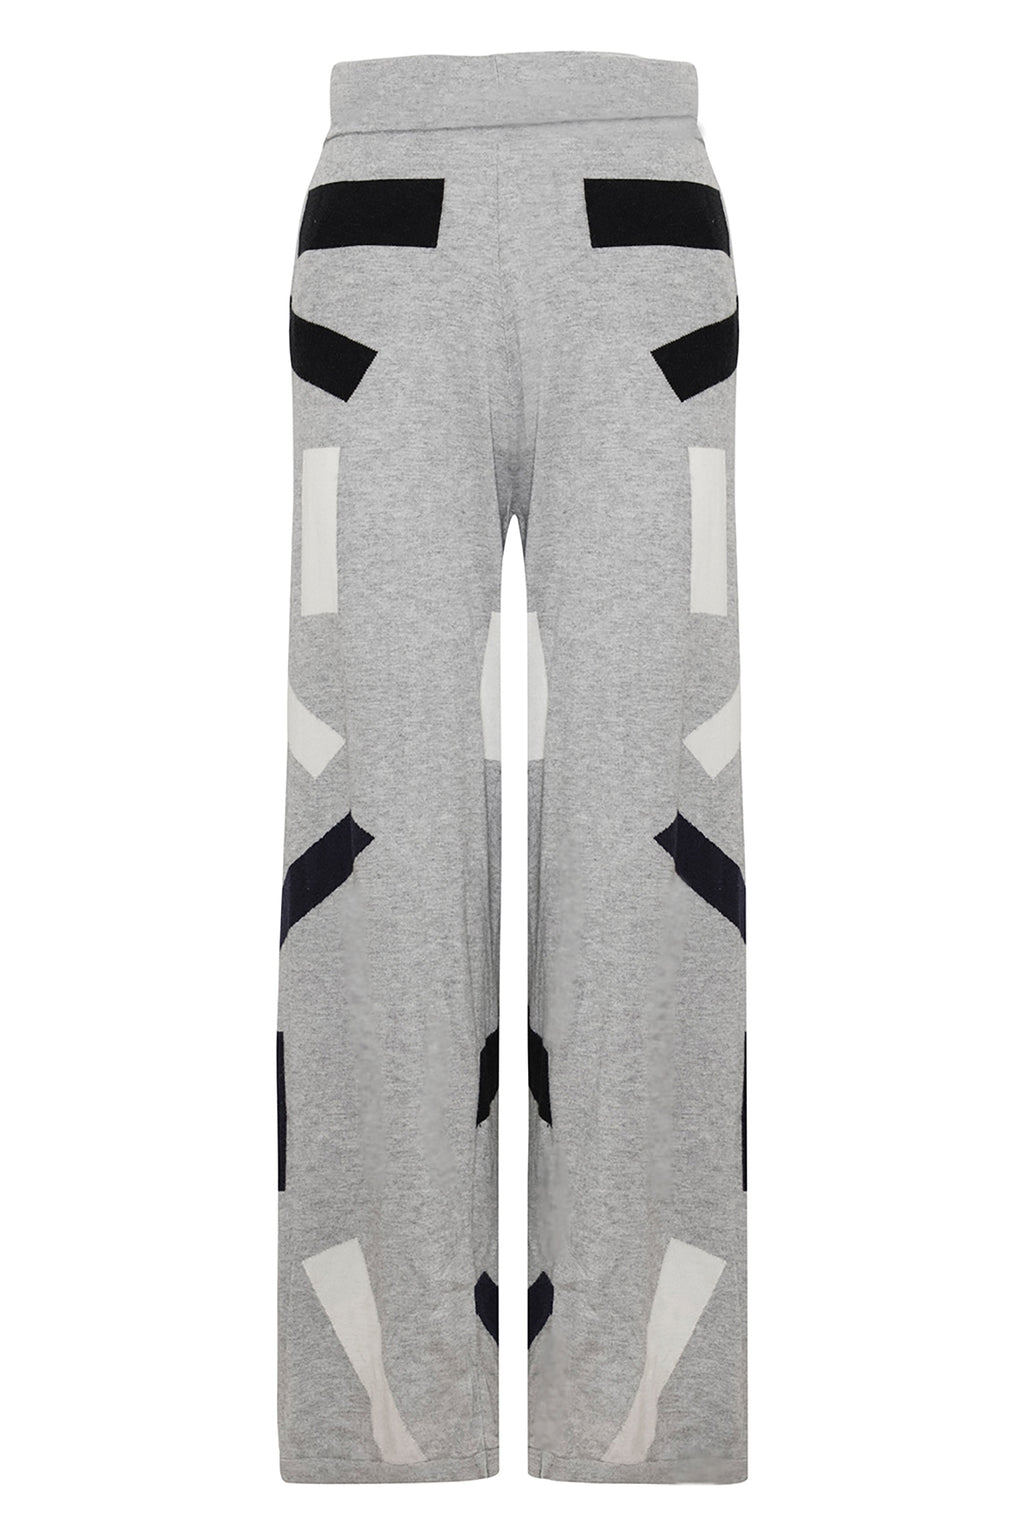 Unisex Cashmere Block Trousers Grey